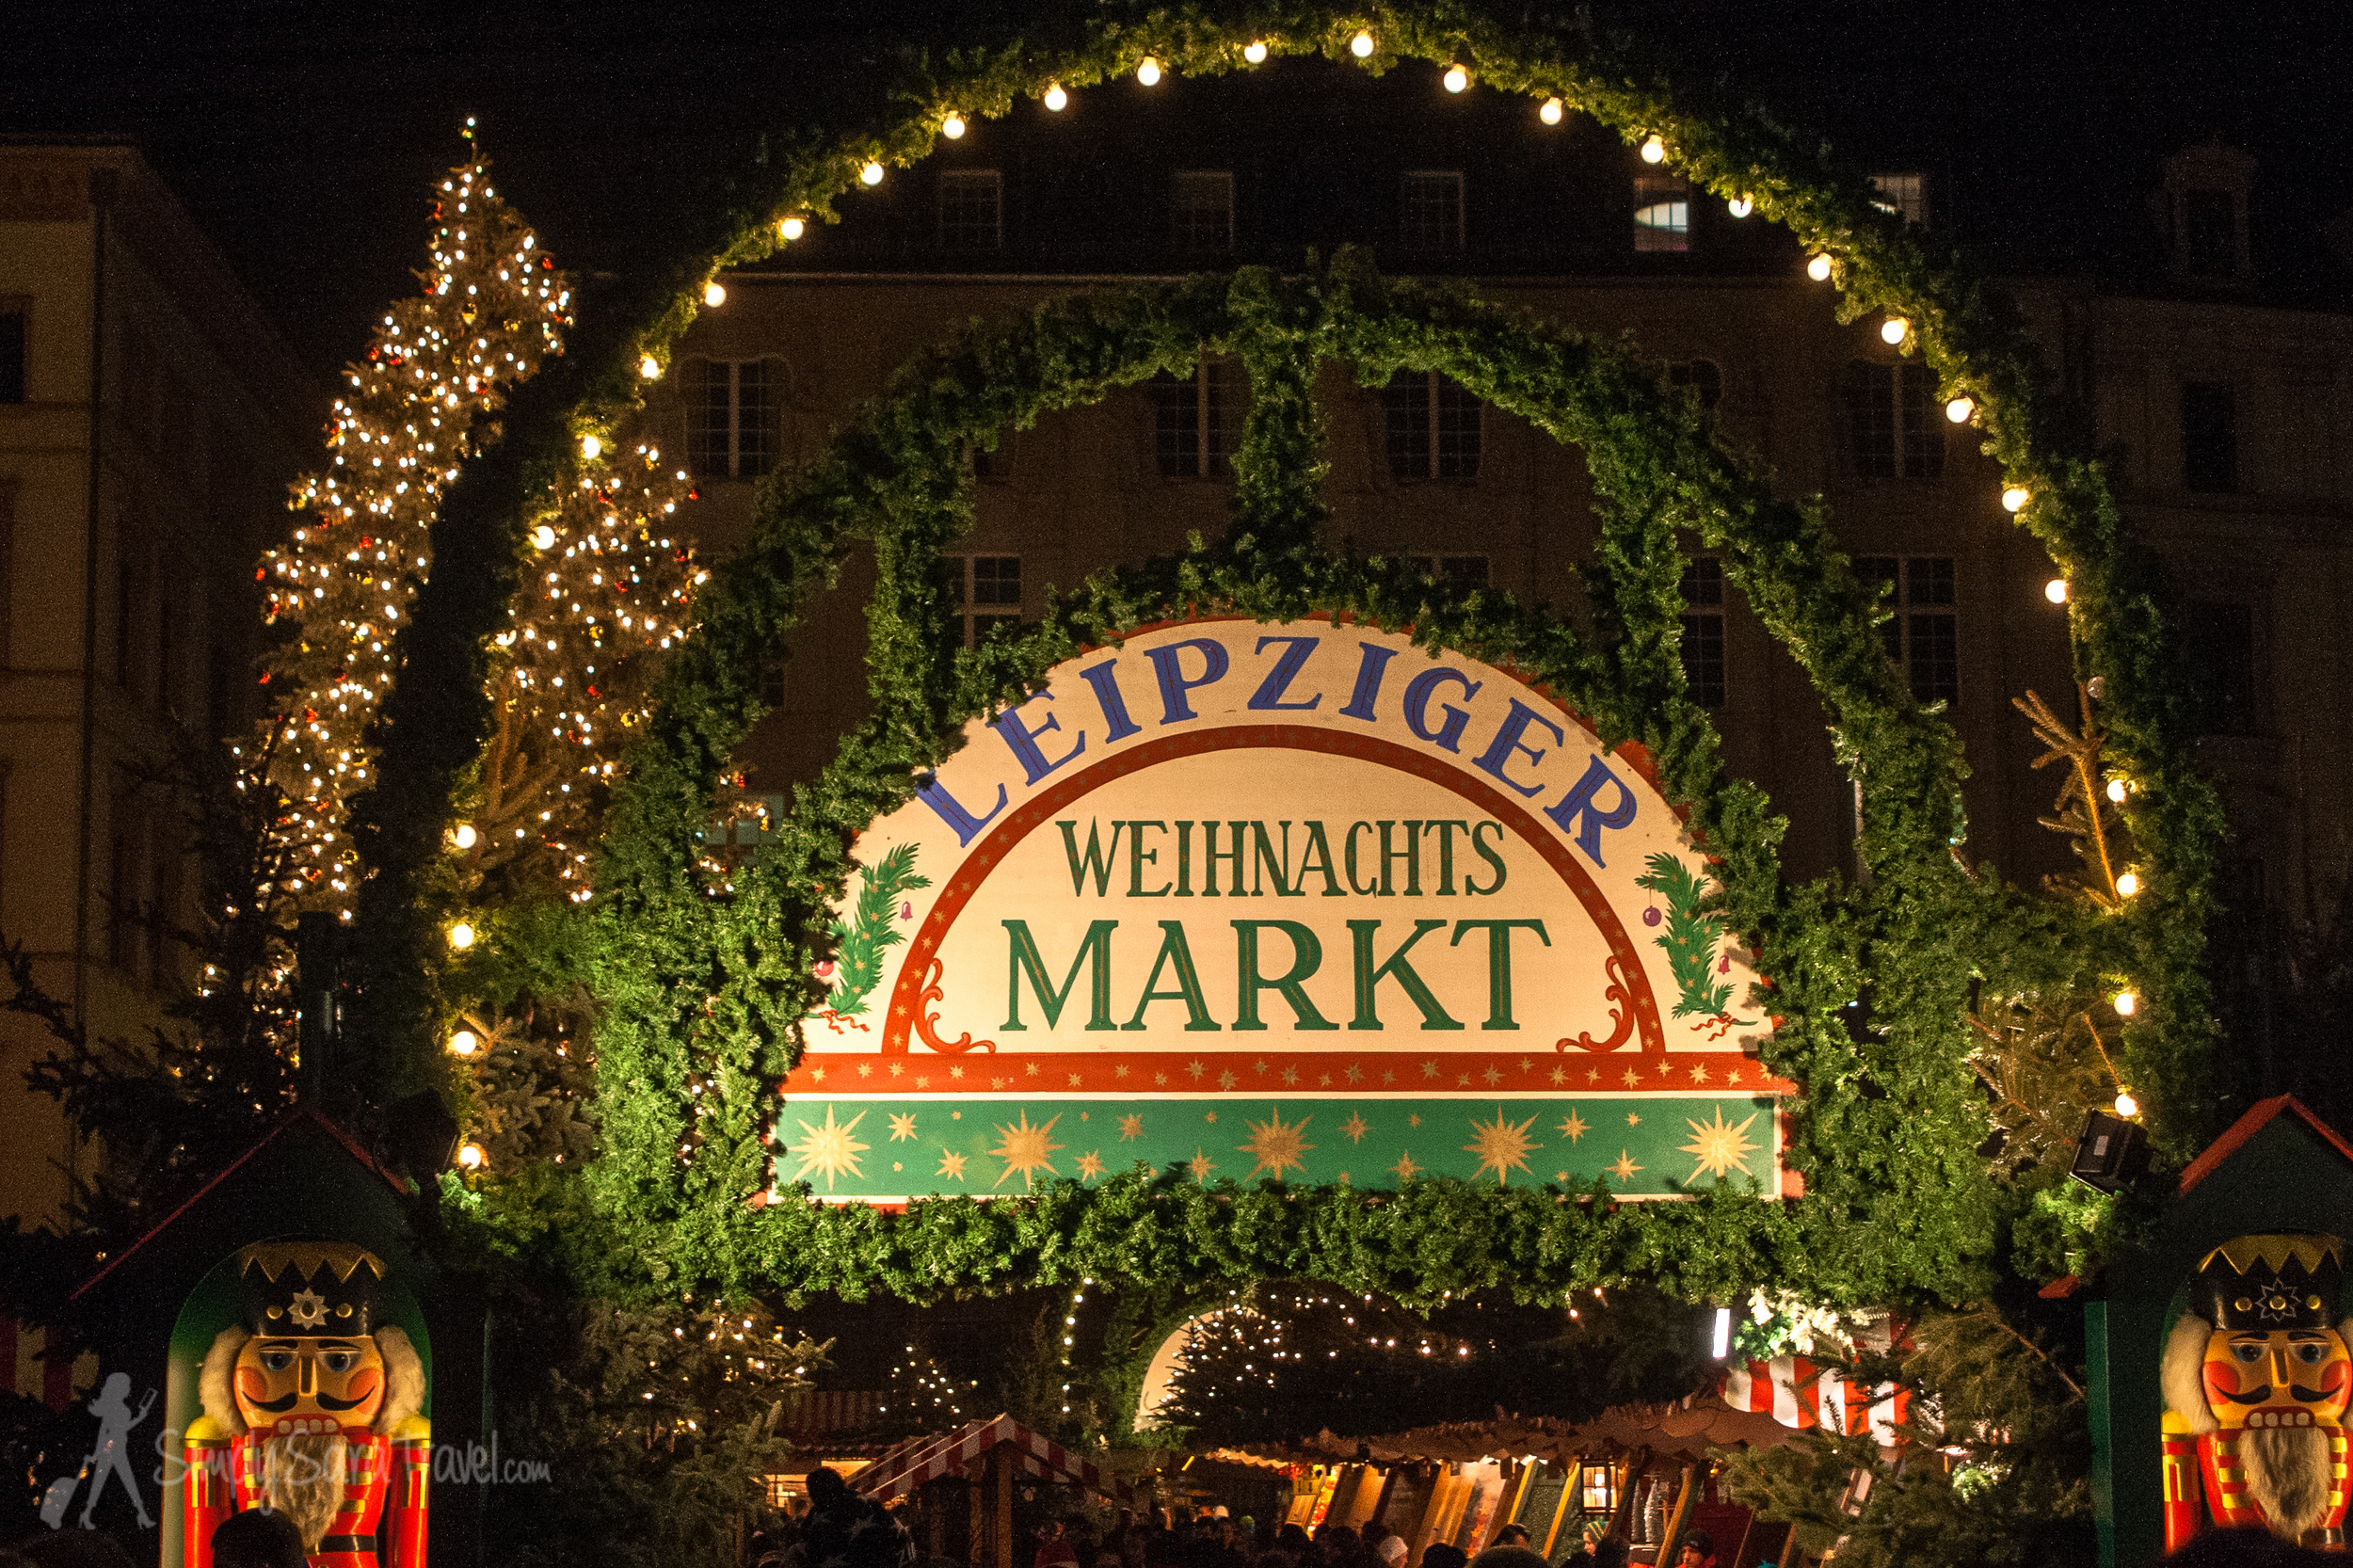 The Christmas market (Weihnachts Markt) in Leipzig, Germany